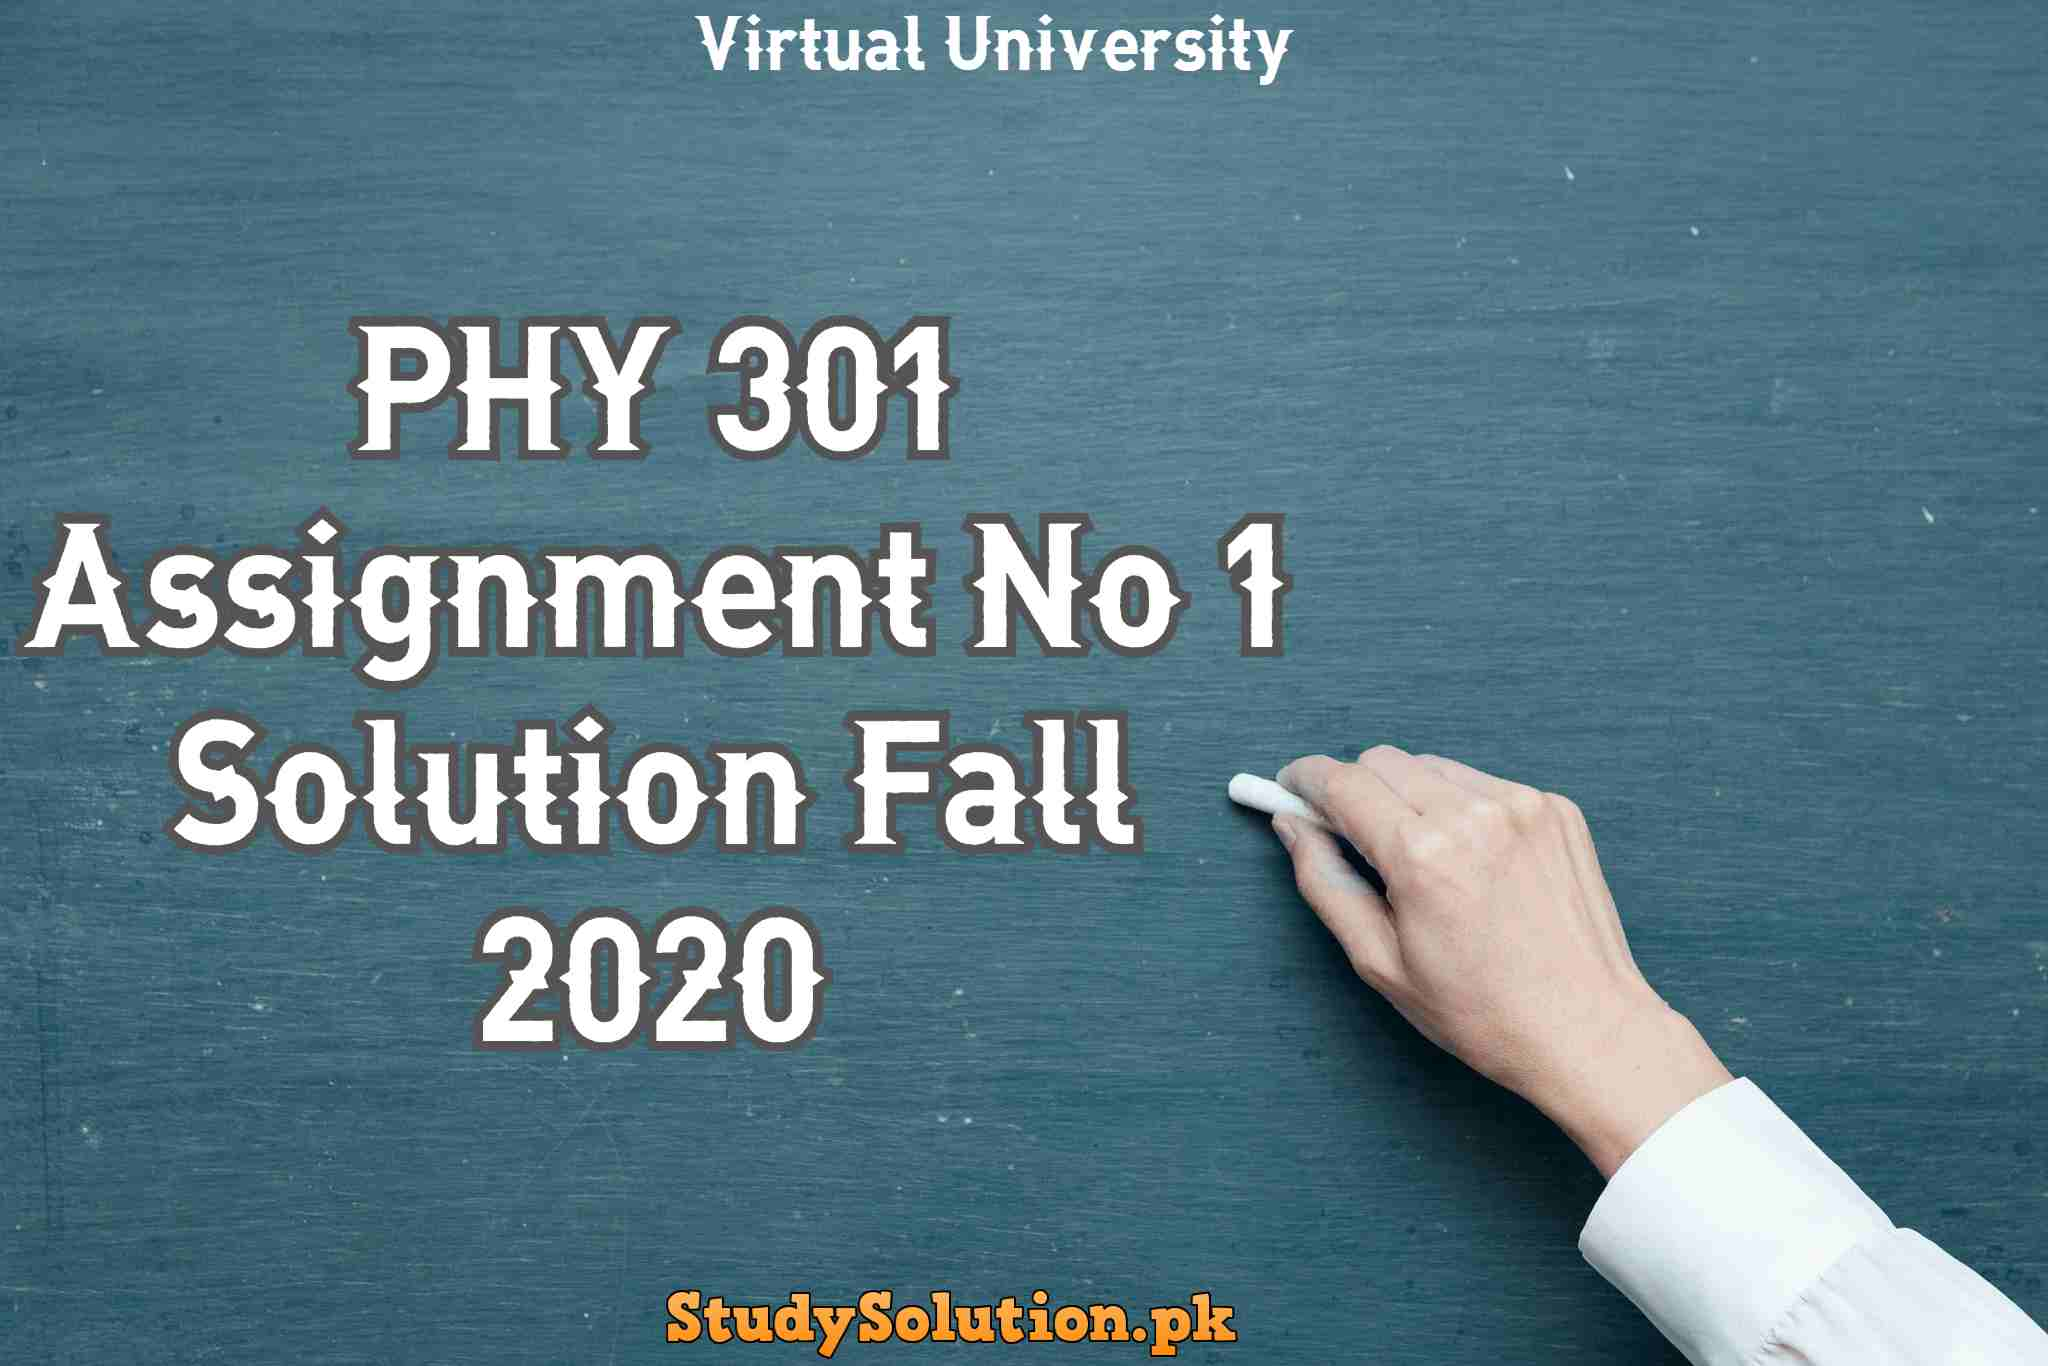 PHY 301 Assignment No 1 Solution Fall 2020